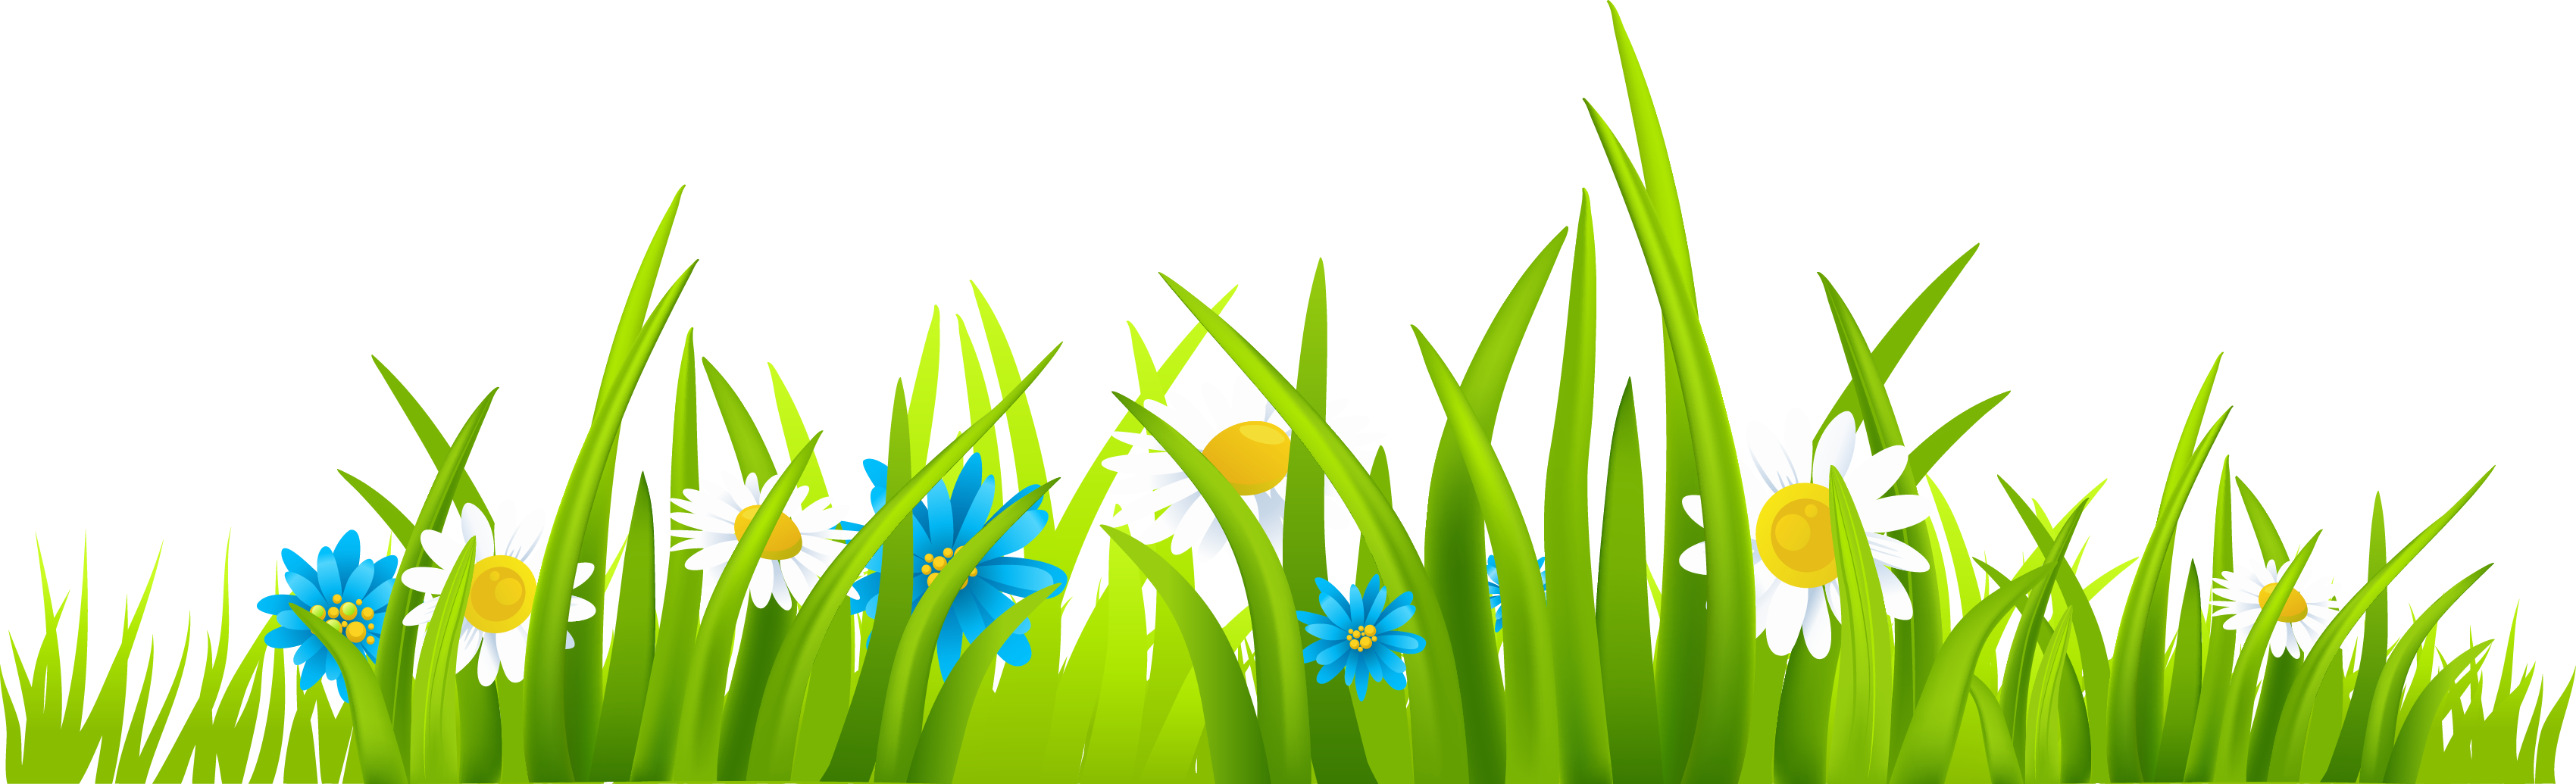 Grass clip art free clipart panda free clipart images for Designing with grasses